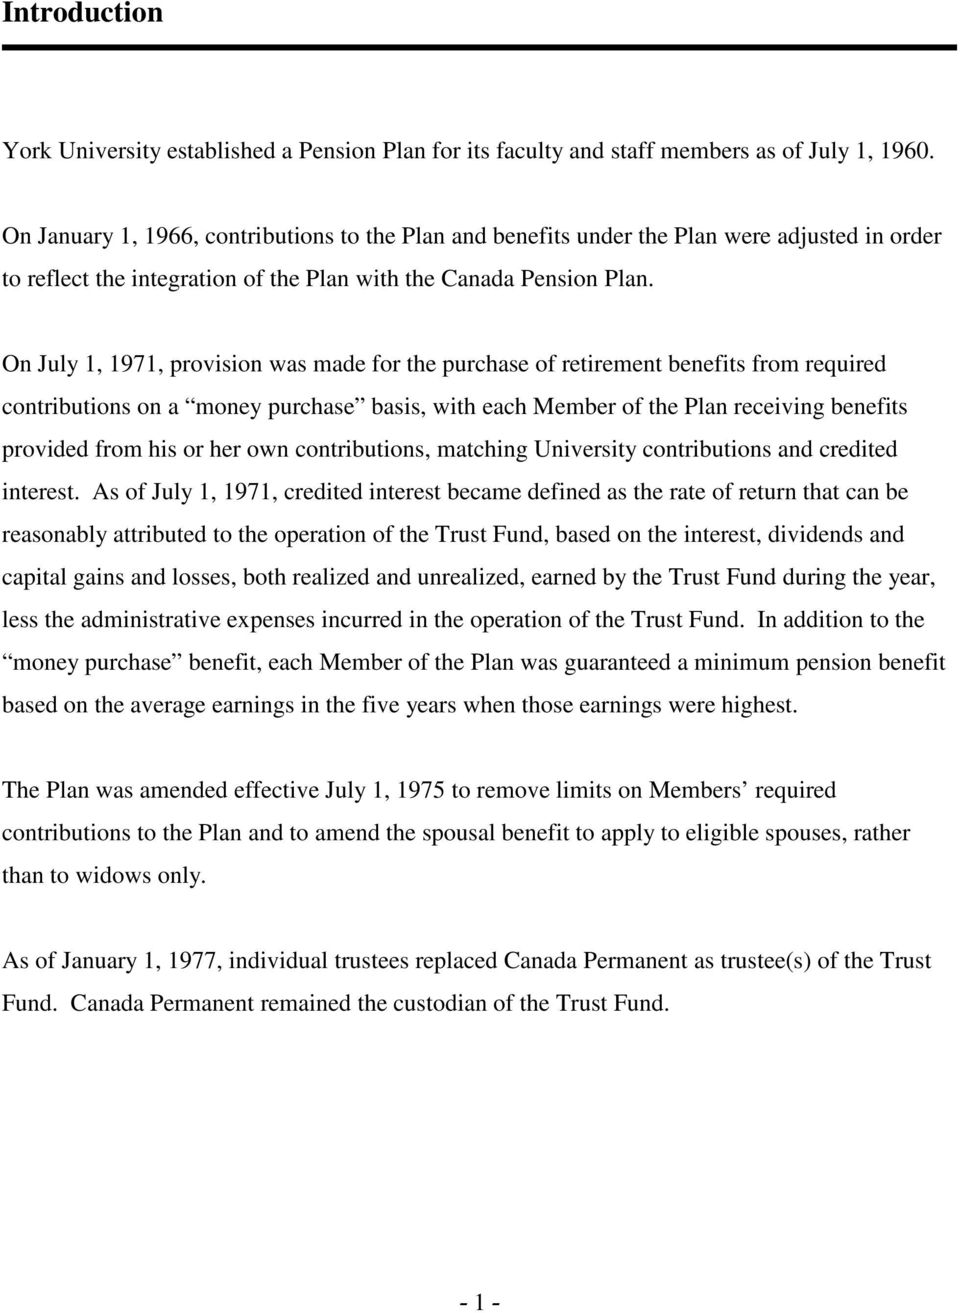 On July 1, 1971, provision was made for the purchase of retirement benefits from required contributions on a money purchase basis, with each Member of the Plan receiving benefits provided from his or